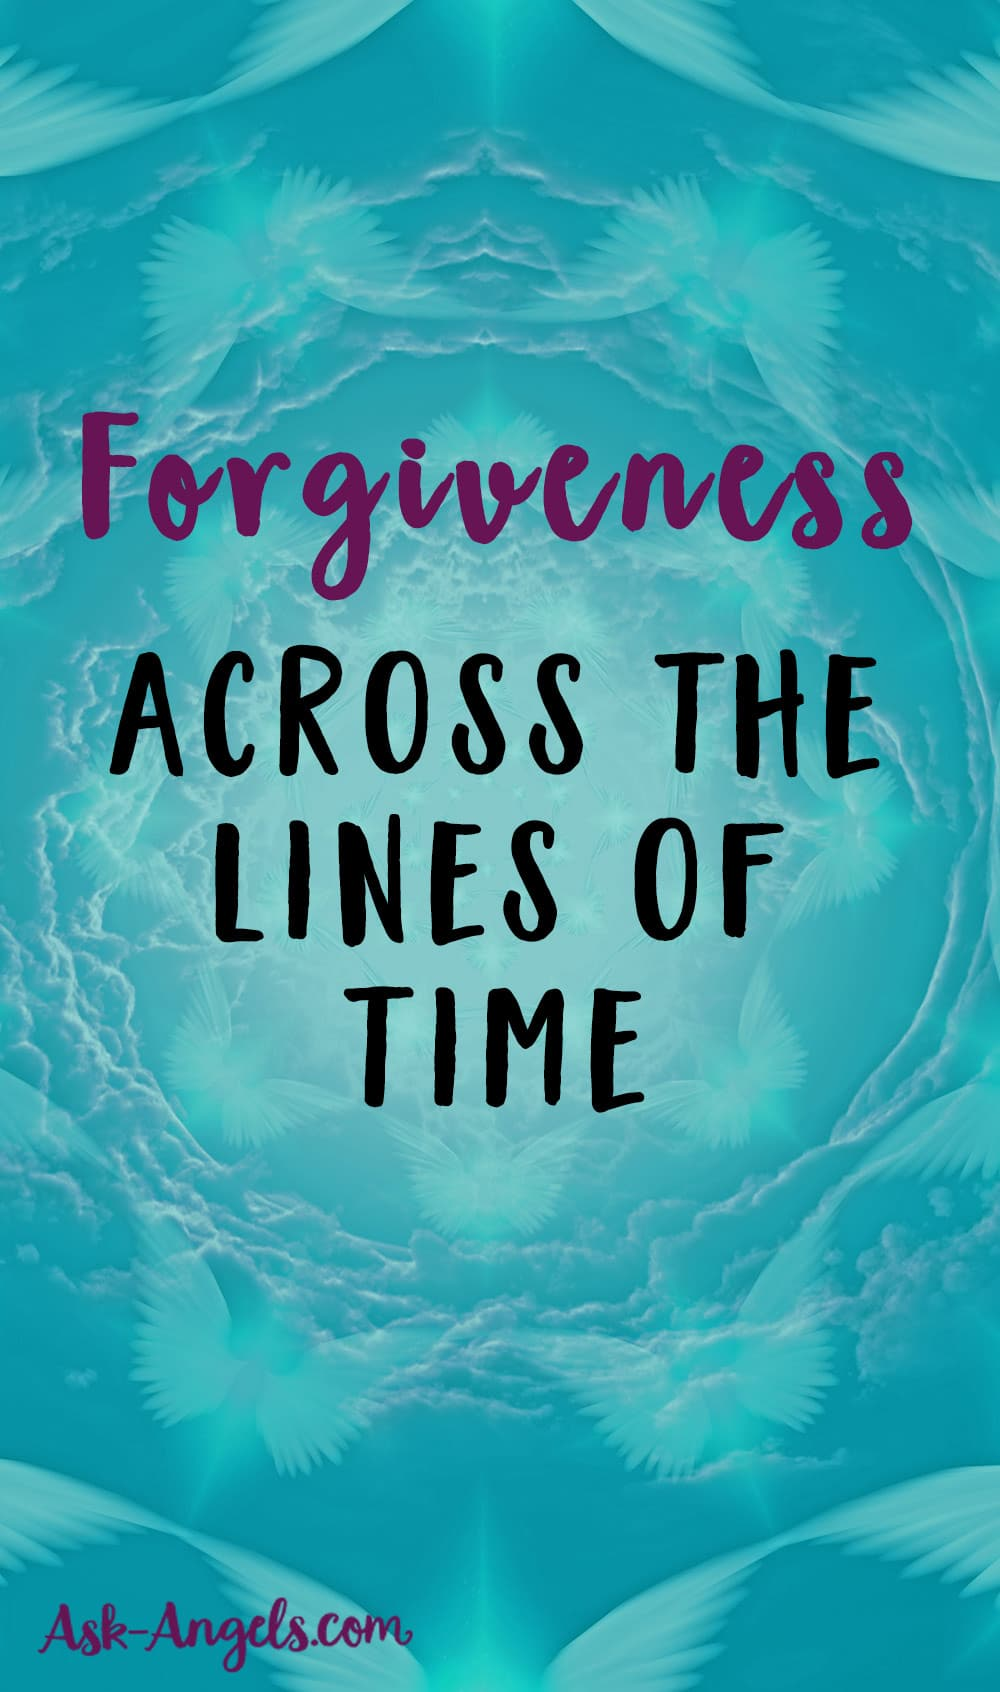 Forgiveness Across the Lines of Time